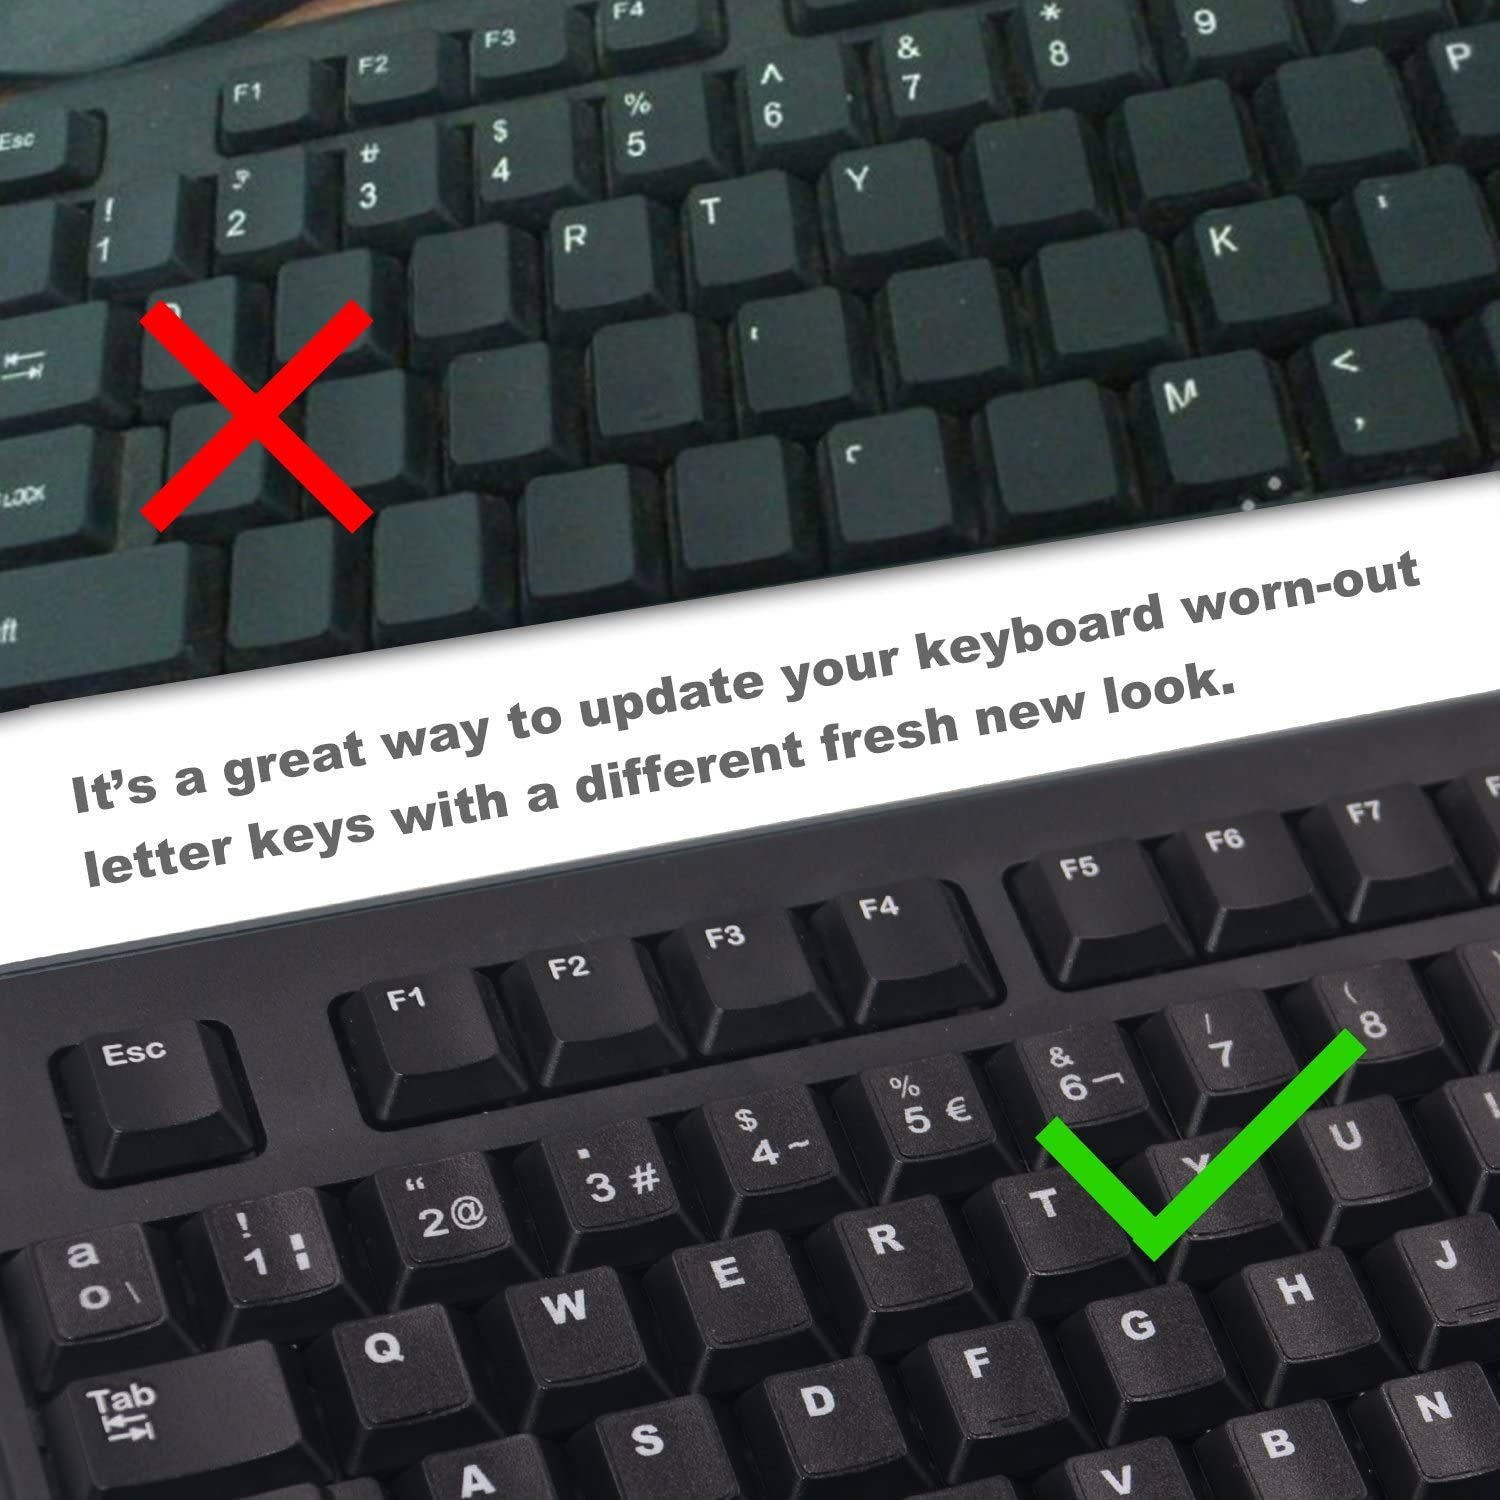 3-Pack Universal Korean Keyboard Stickers Each Unit: 0.43 Wx 0.51 H Replacement Korean English Keyboard Stickers with Black Background and White Lettering for Wire//Wireless Keyboard Korean